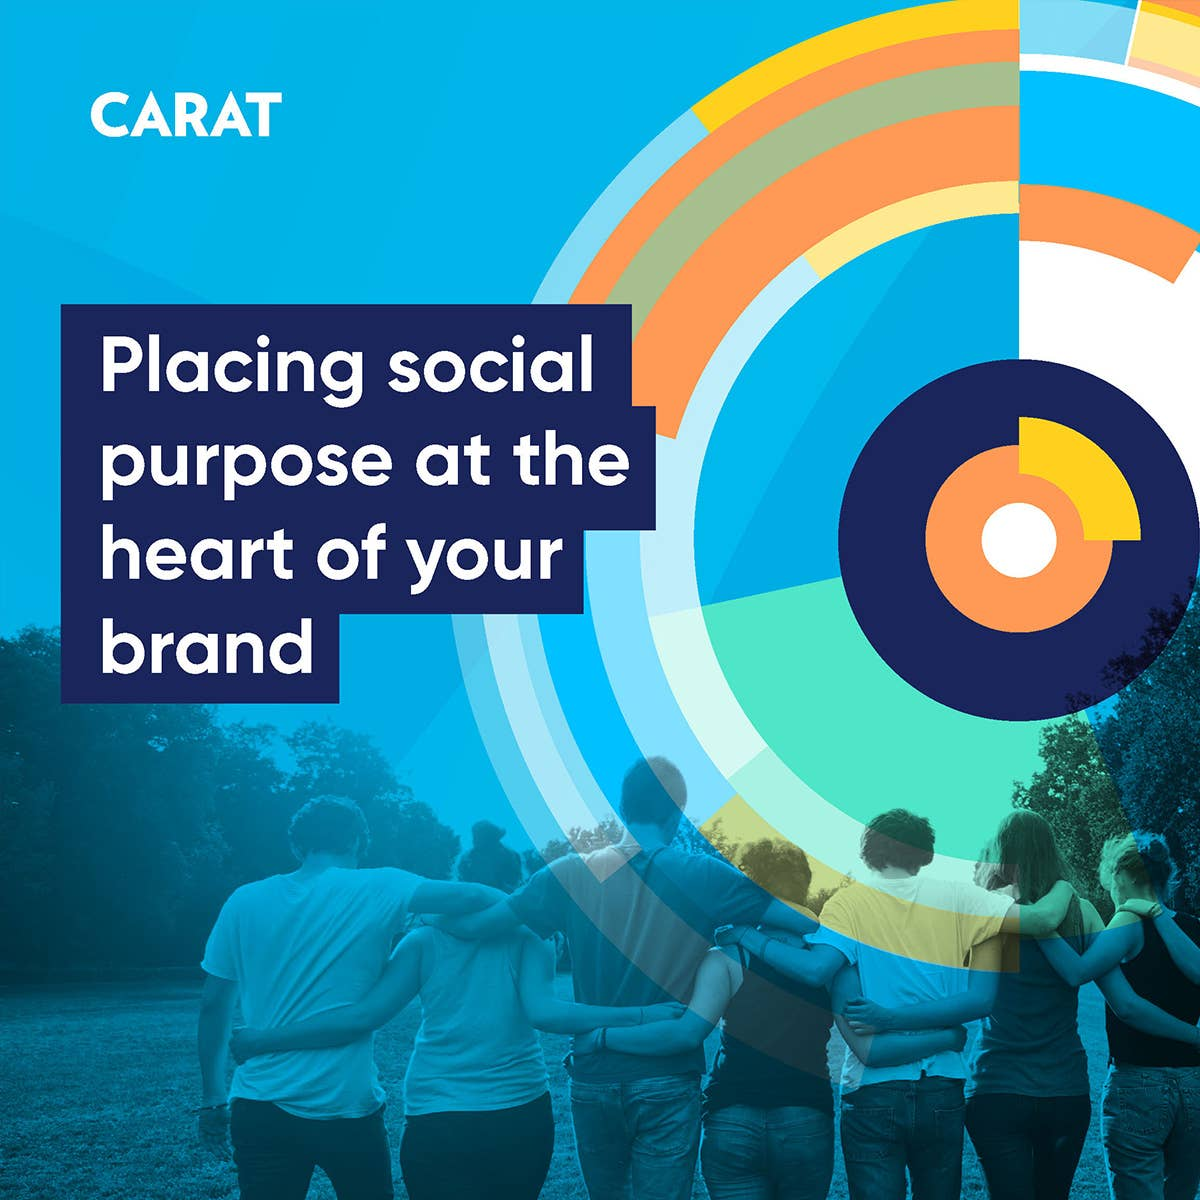 Placing social purpose at the heart of your brand